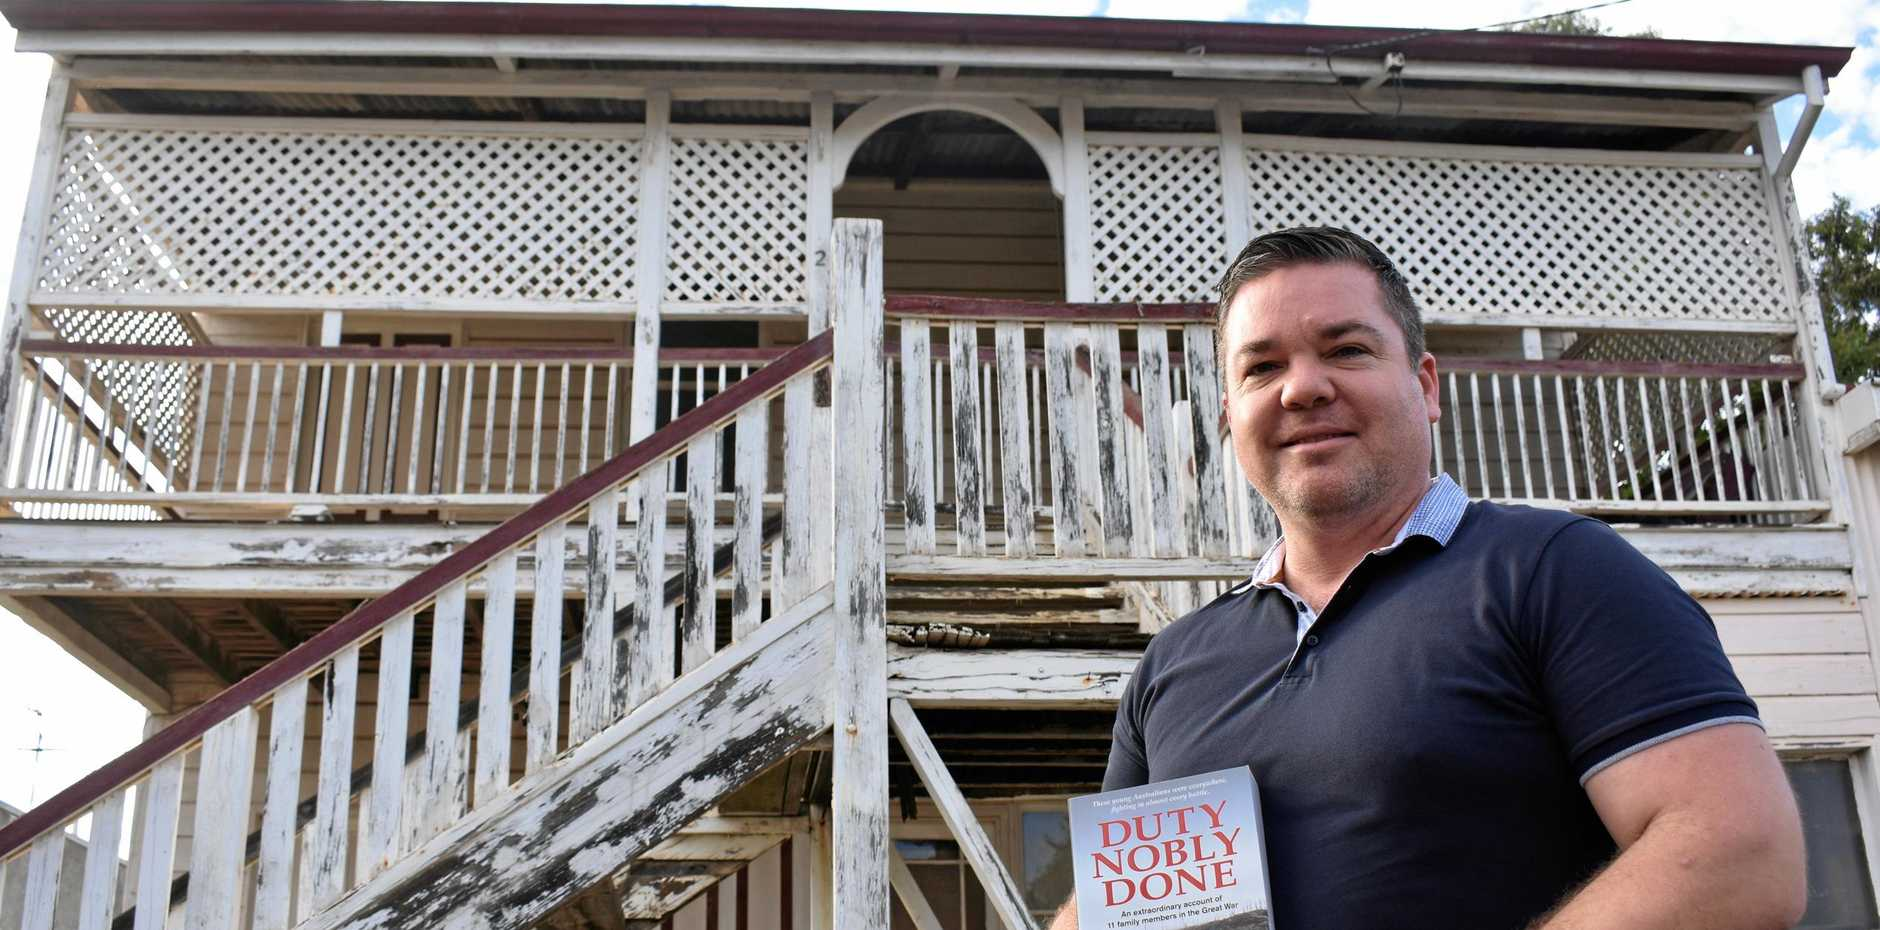 BOOK TOUR: Adam Holloway stands in front of 84 Wyndham St (also in inset), where his book Duty Nobly Done begins.